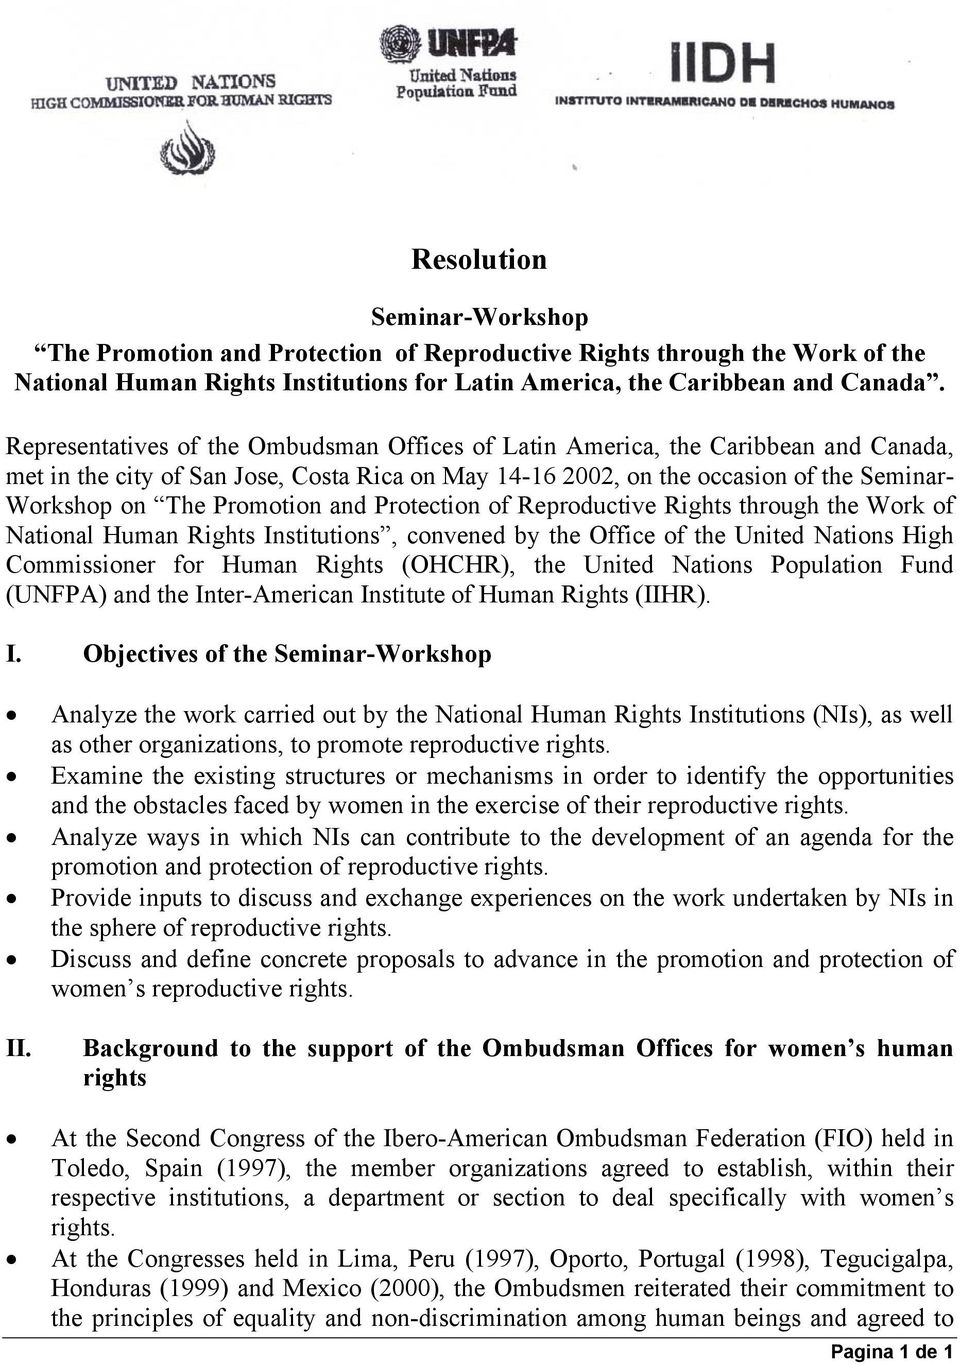 Promotion and Protection of Reproductive Rights through the Work of National Human Rights Institutions, convened by the Office of the United Nations High Commissioner for Human Rights (OHCHR), the